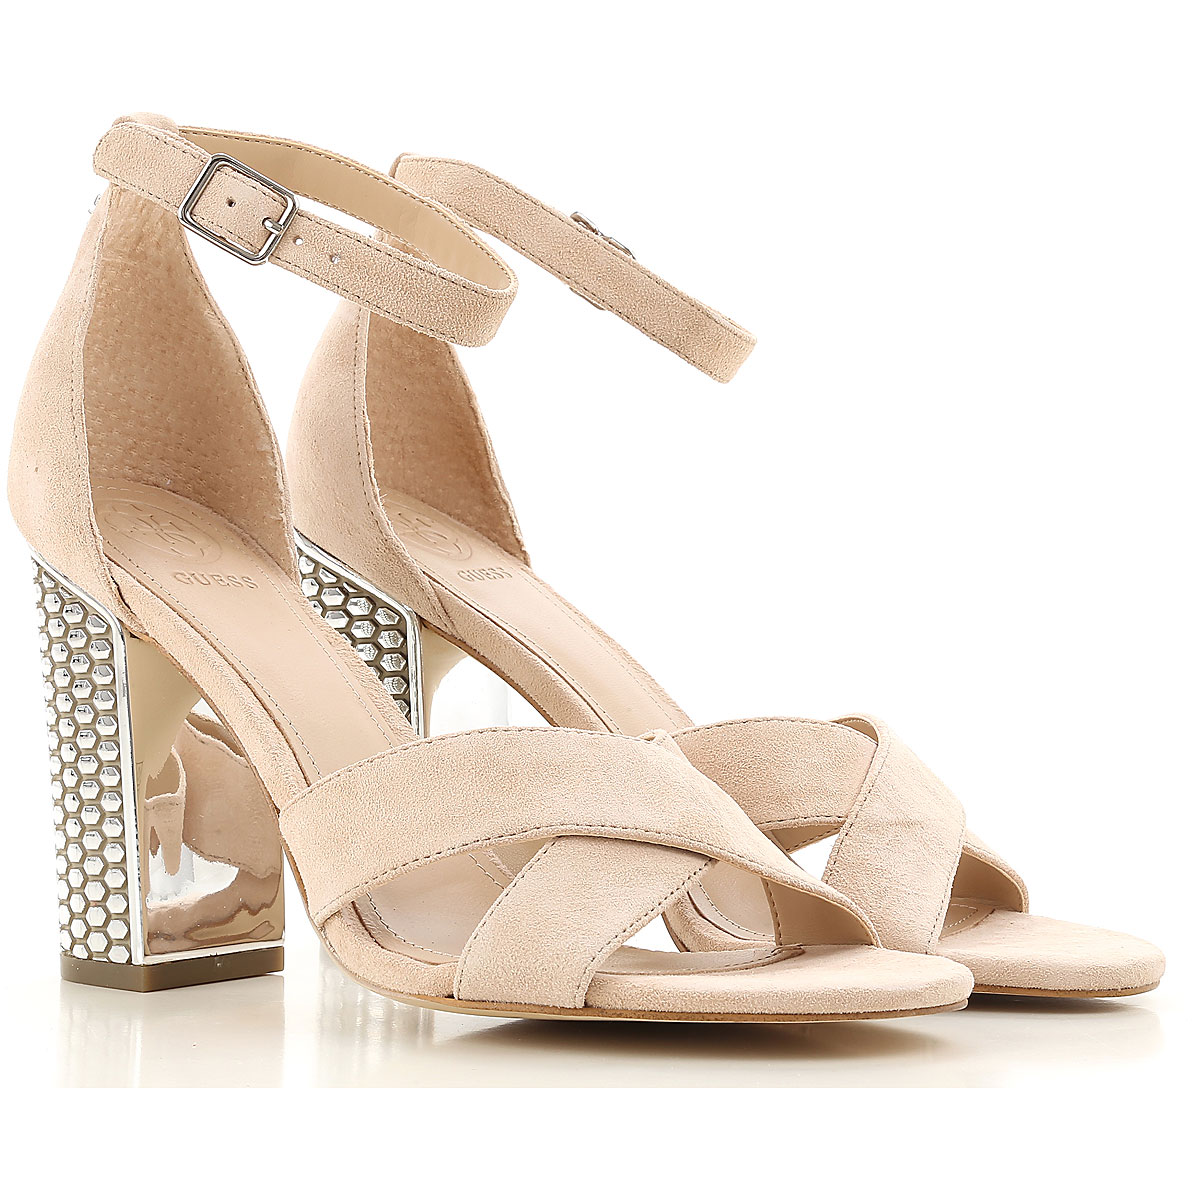 Guess Womens Shoes On Sale in Outlet 303df171fe